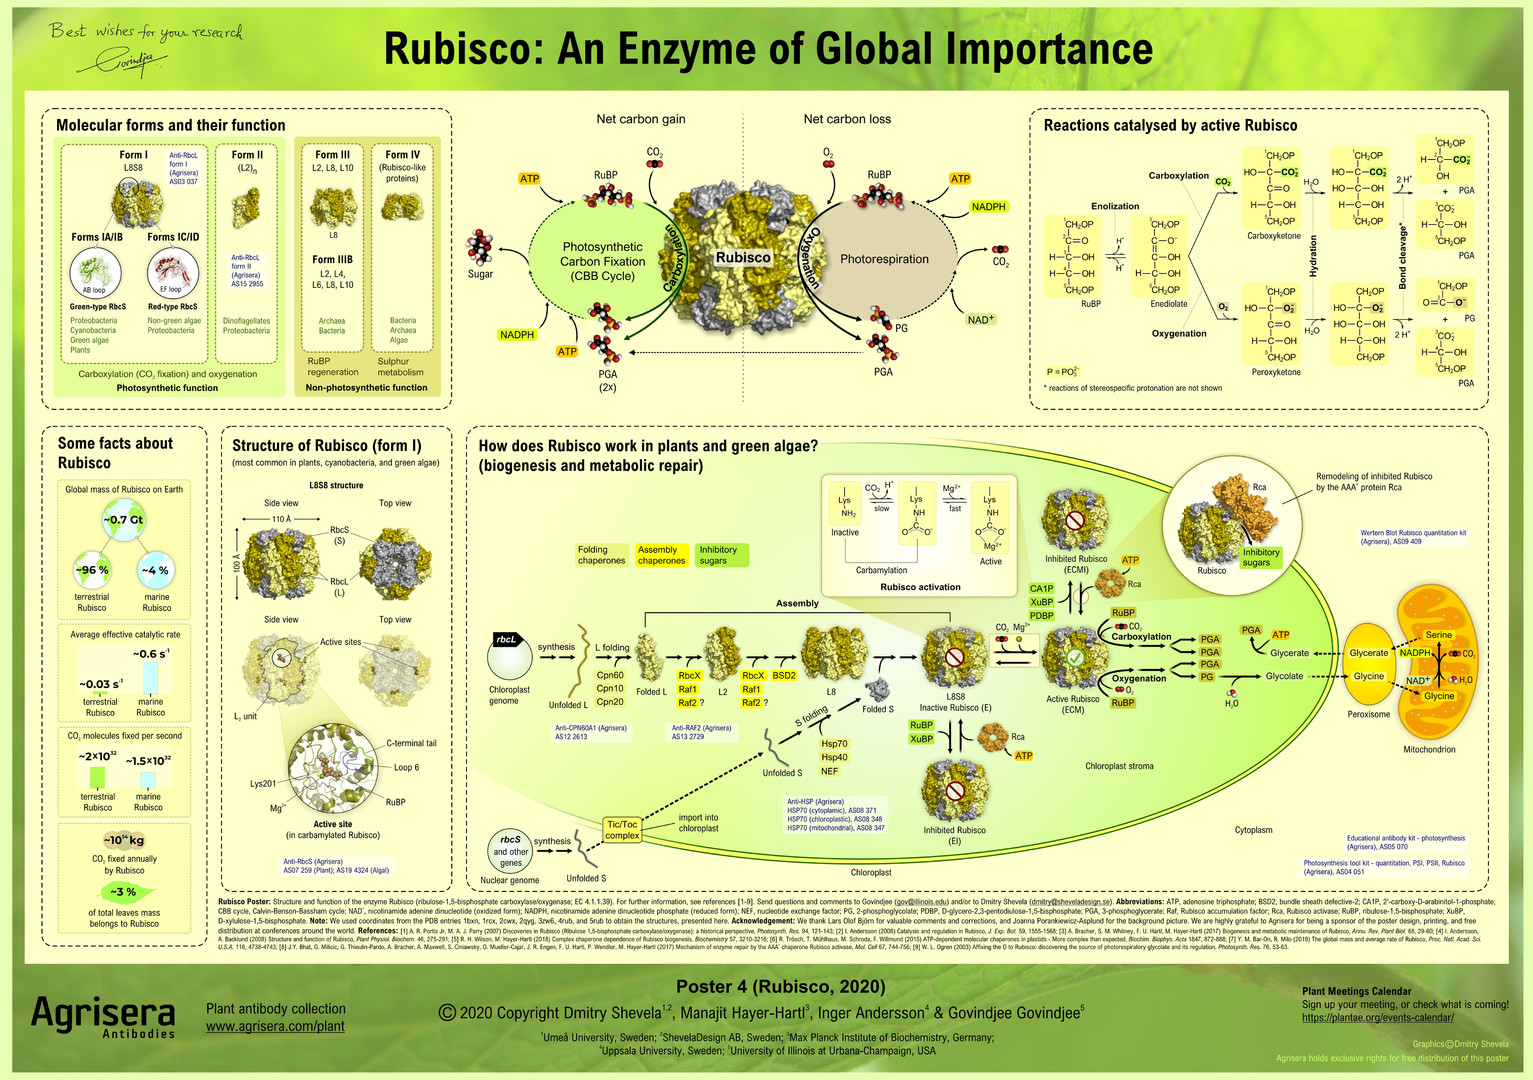 Agrisera-Poster-4-Rubisco-An-Enzyme-of-G